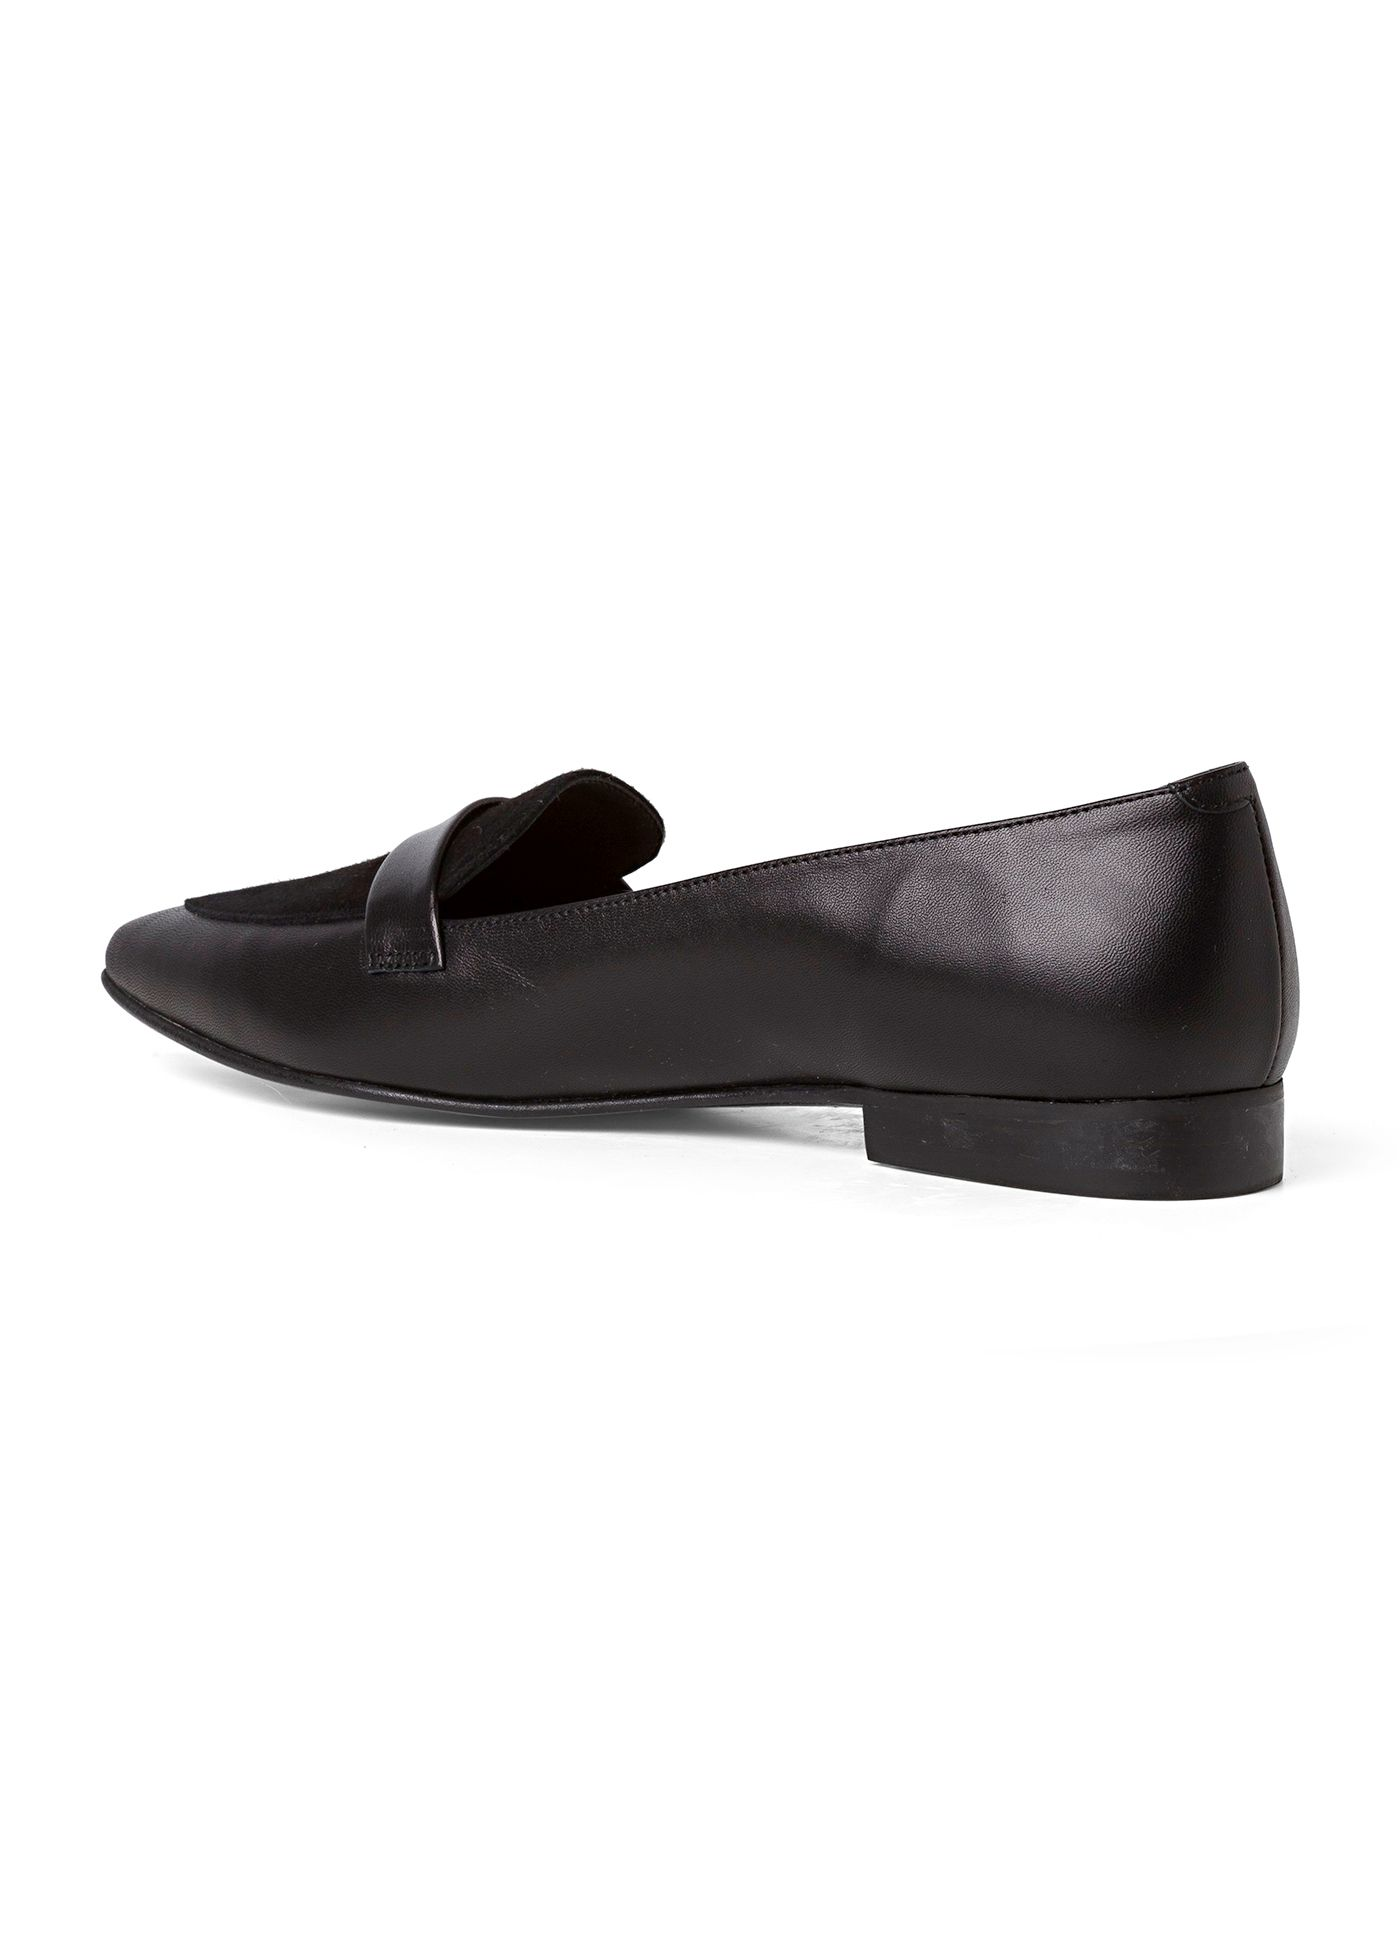 Alexandra II Loafer Nappa Suede Mix image number 2